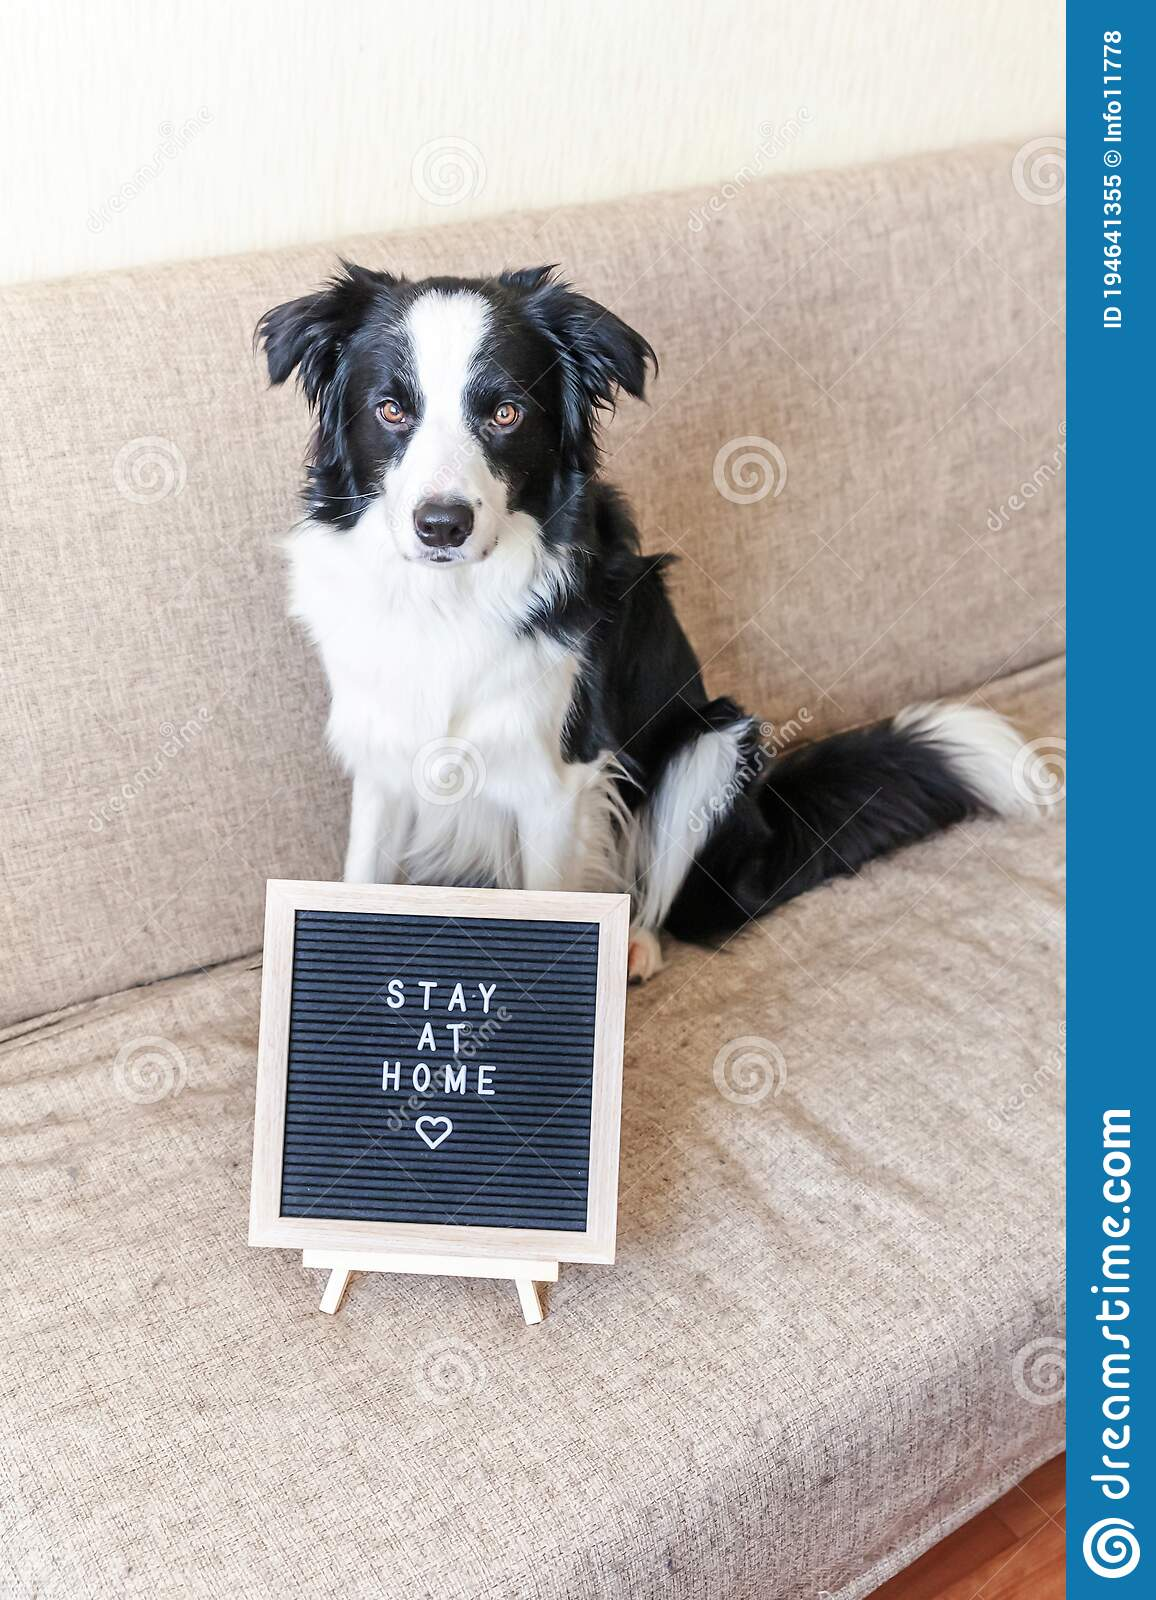 Stay Home Funny Portrait Of Cute Puppy Dog On Couch With Letter Board Inscription Stay At Home Word New Lovely Member Of Family Stock Image Image Of Pedigree Indoors 194641355